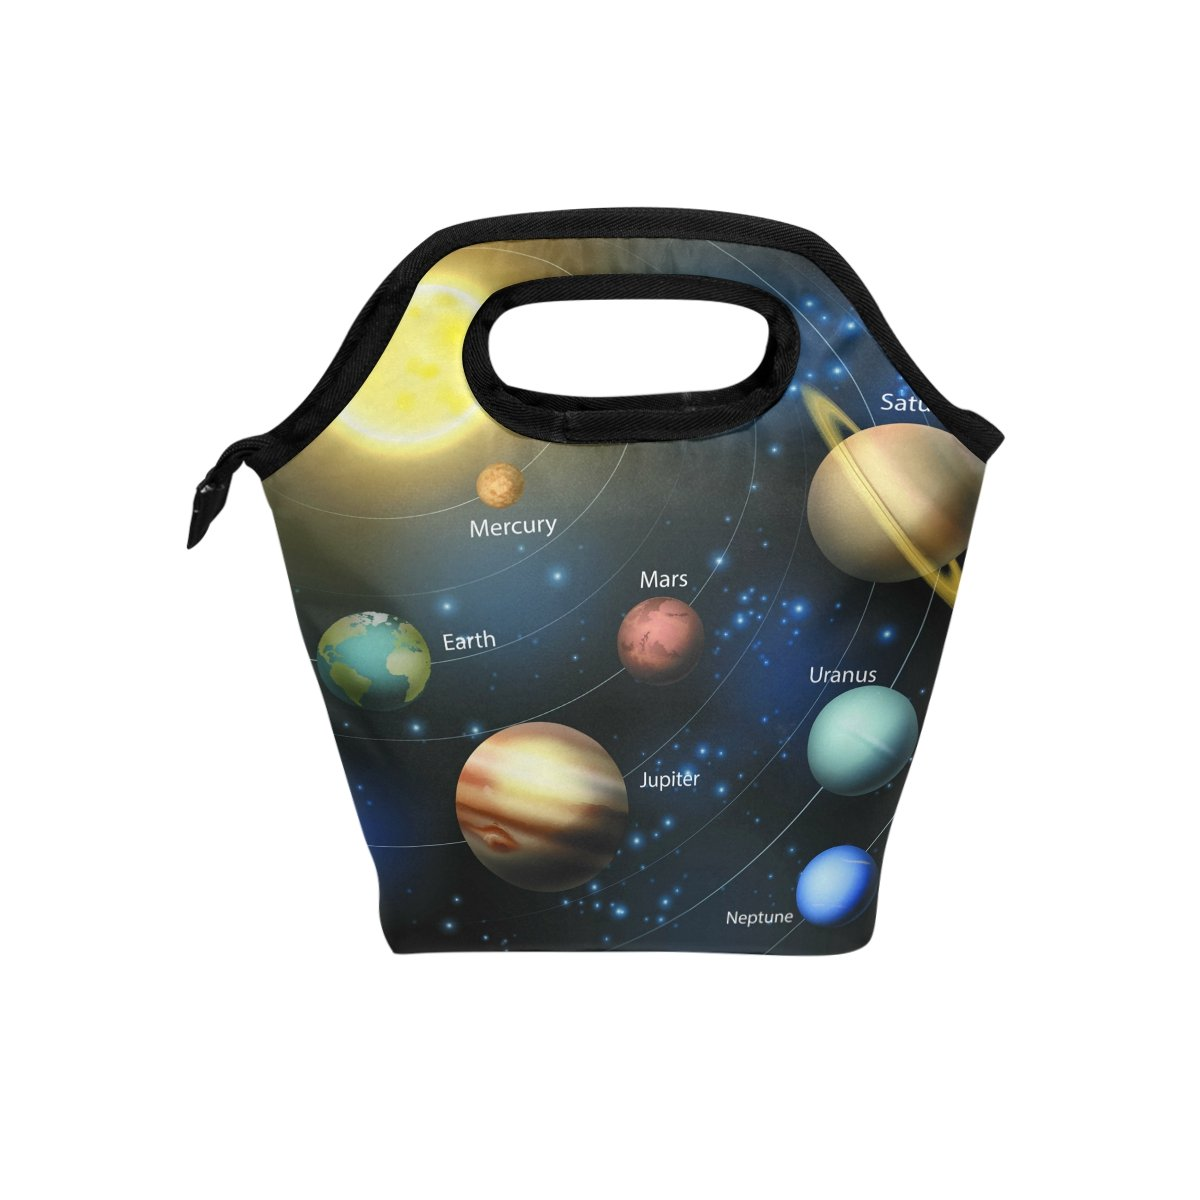 Naanle Universe Space Insulated Zipper Lunch Bag Cooler Tote Bag for Adult Teens Kids Girls Boys Men Women, Solar System Lunch Boxes Lunchboxes Meal Prep Handbag for Outdoors School Office